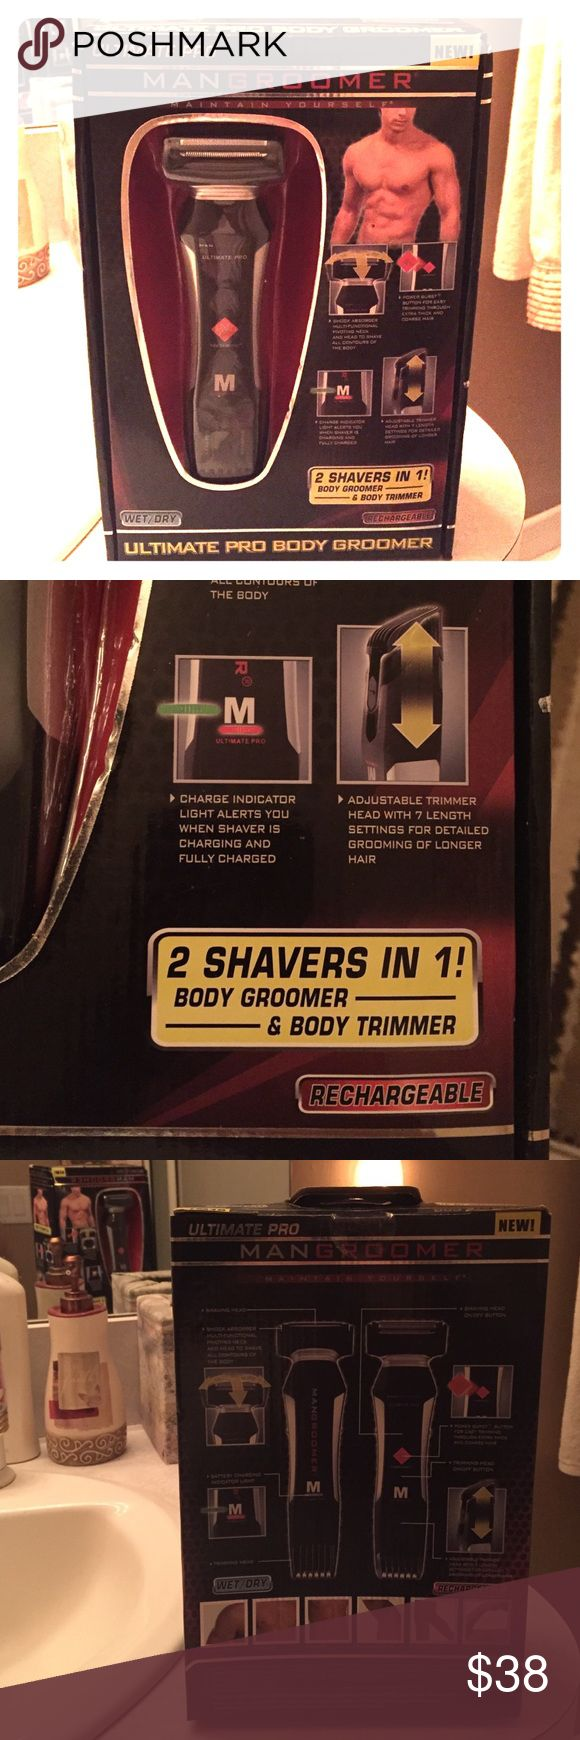 Man groomer shaver Ultimate Pro Man Groomer 2 in 1 shaver. Wet/dry, shower safe, adjustable trimmer, and it's rechargeable with stand. New in box. Man Groomer Other